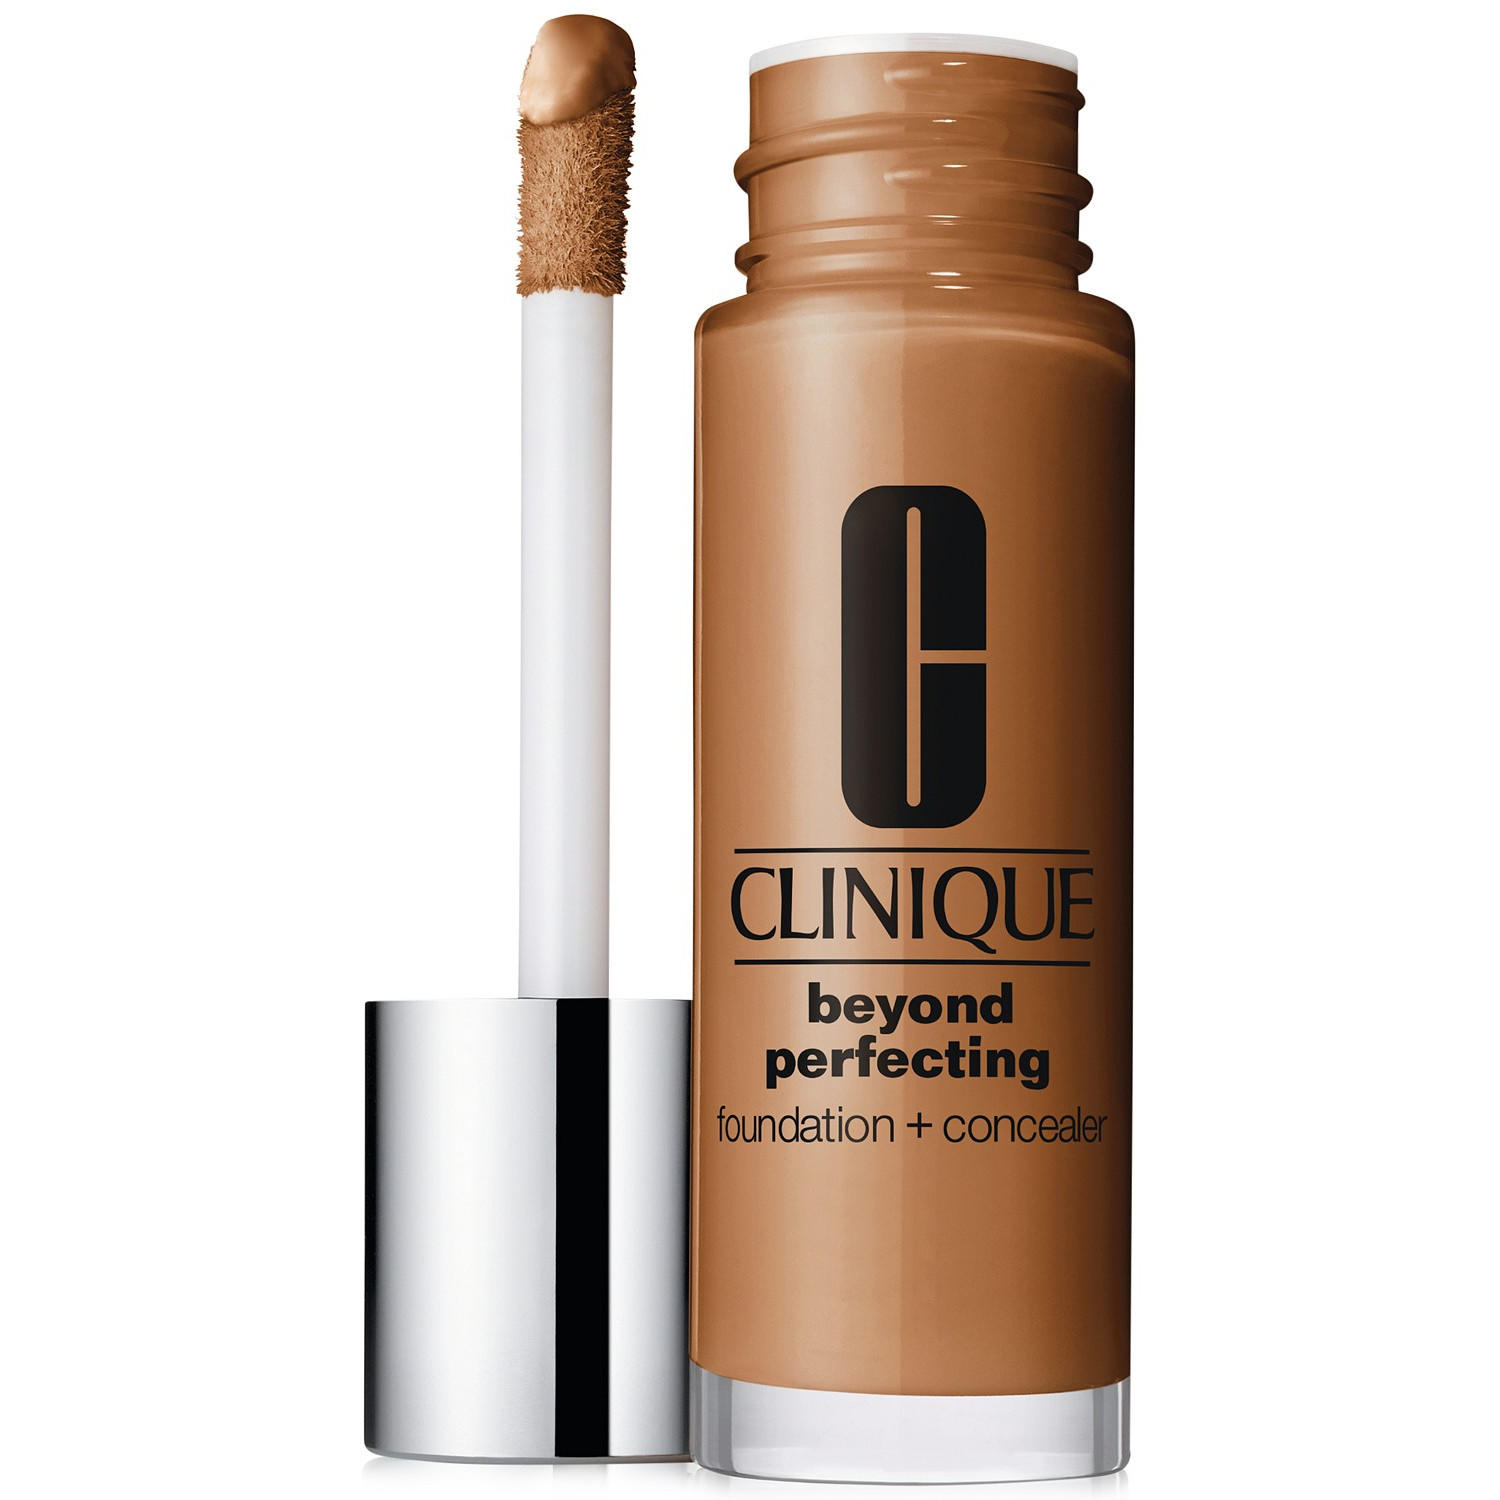 Clinique Beyond Perfecting Foundation + Concealer Golden 24